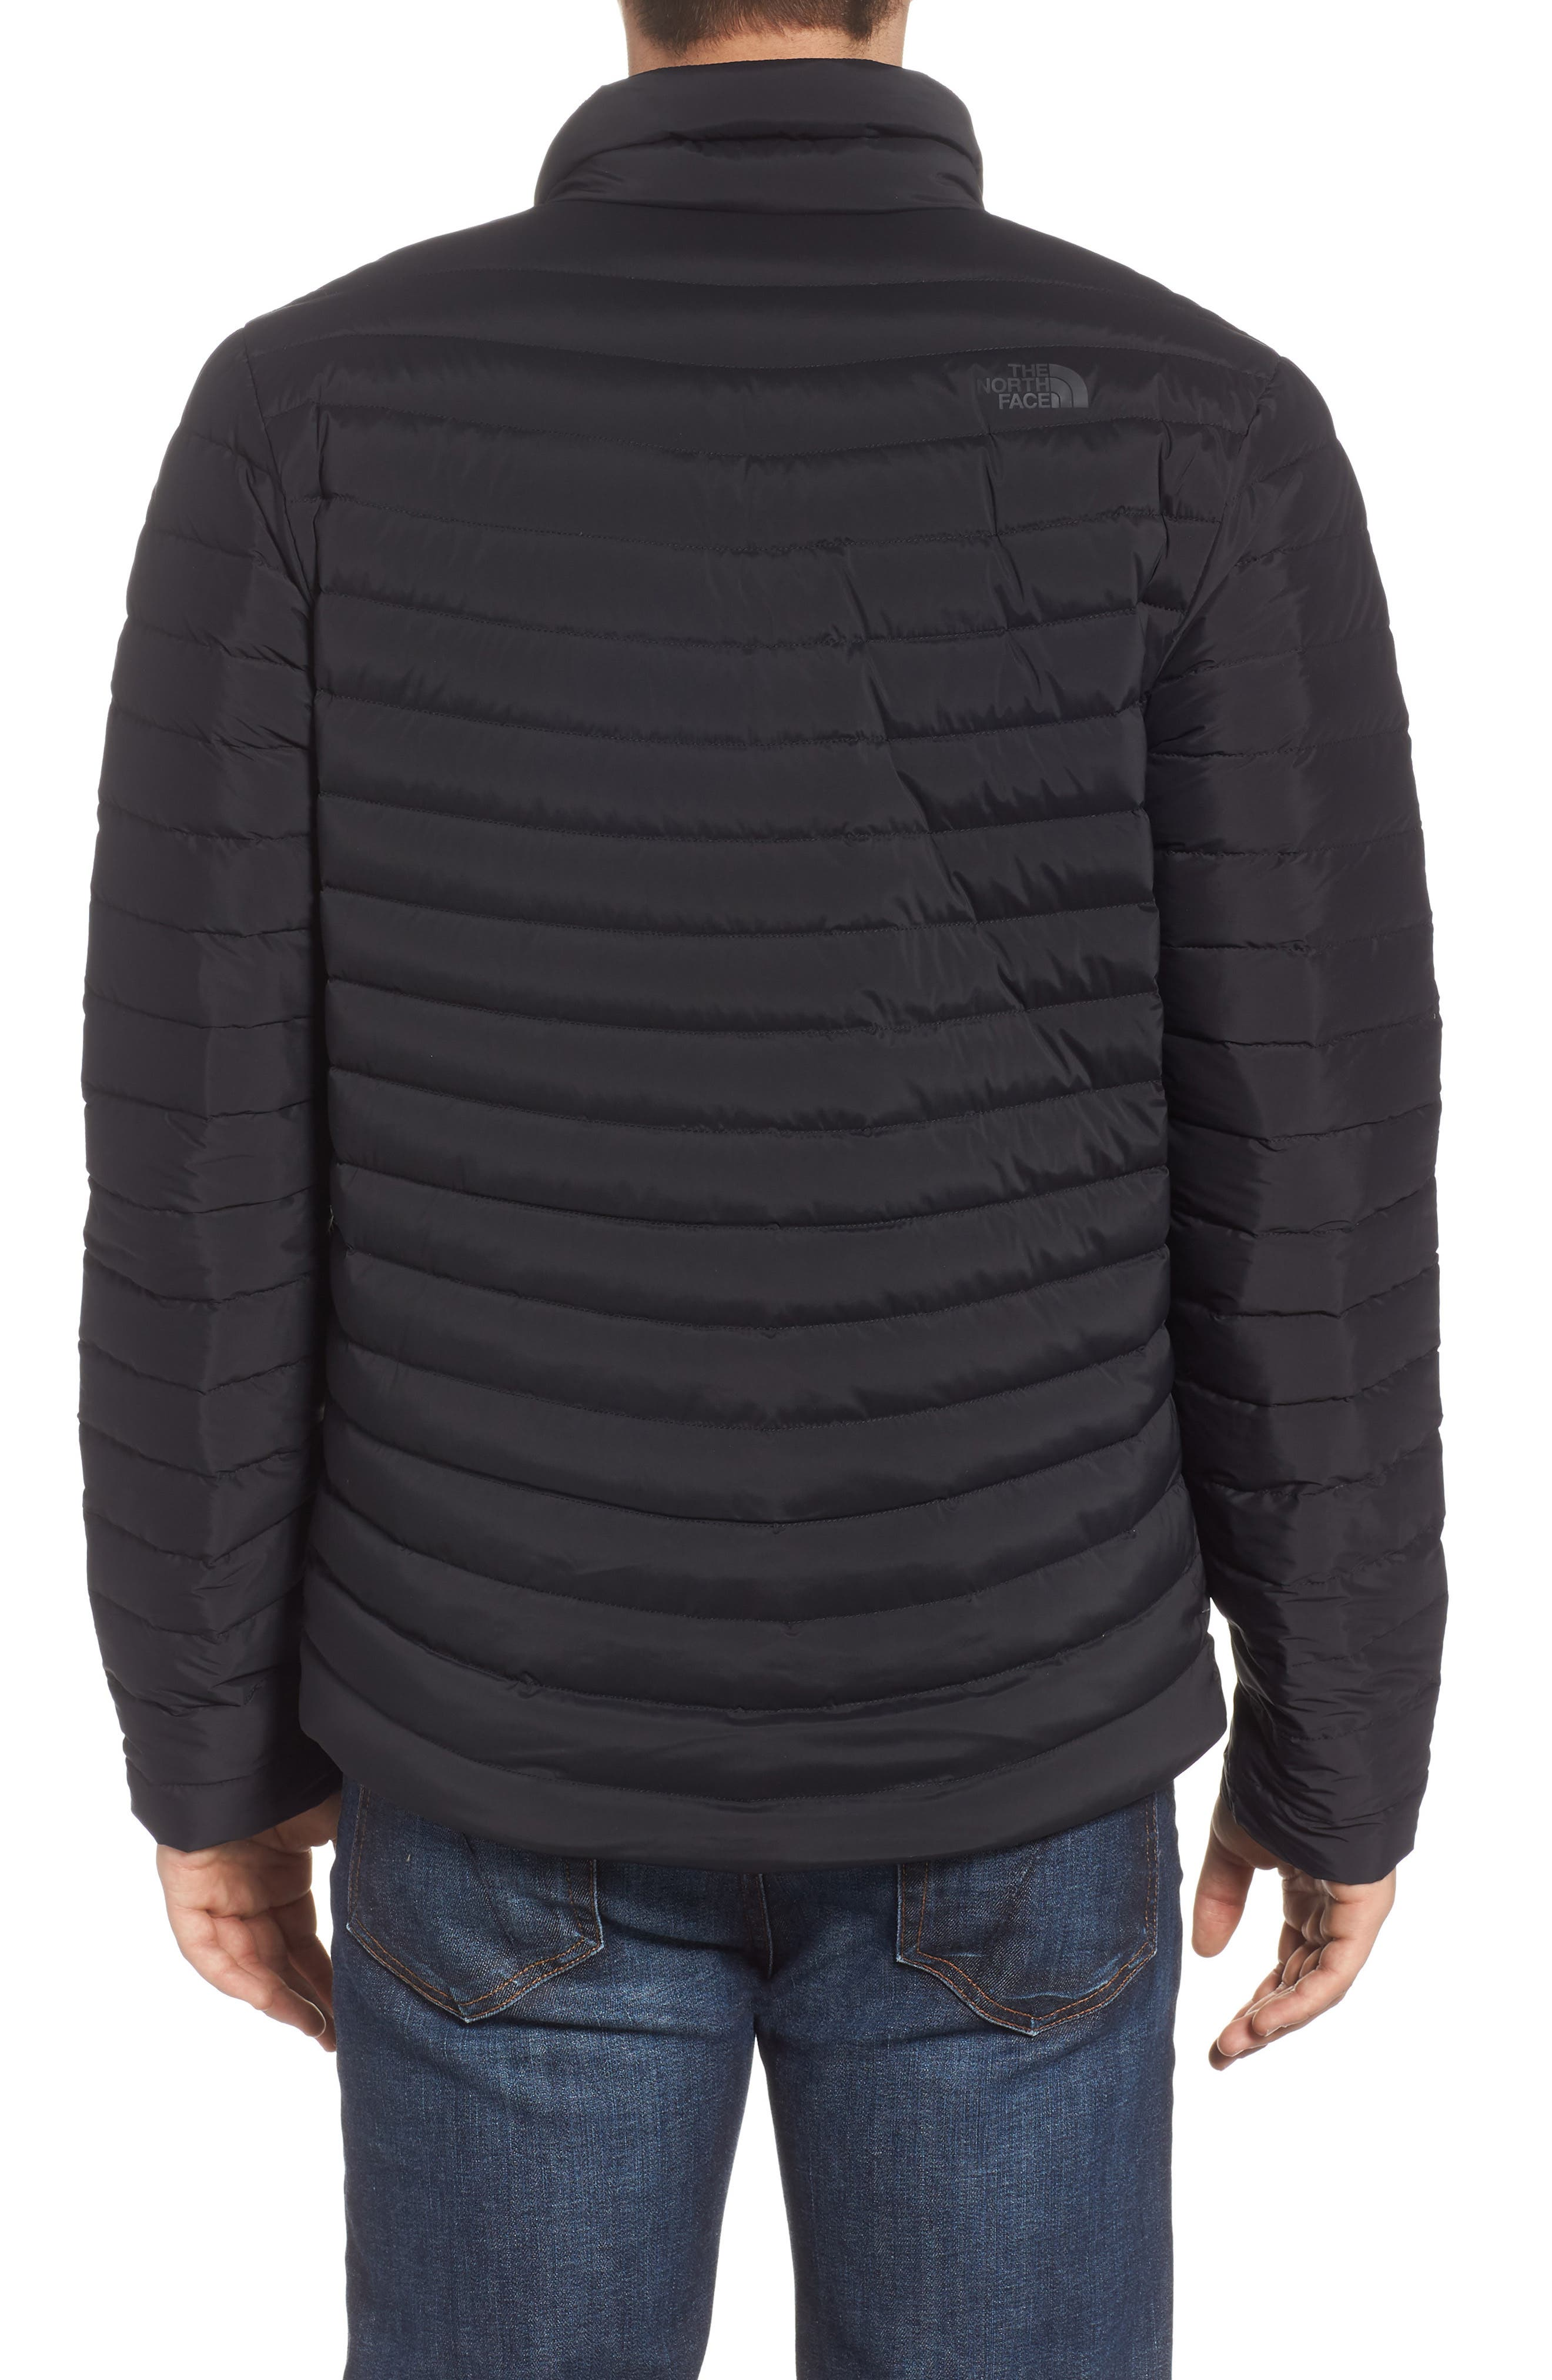 THE NORTH FACE, Packable Stretch Down Jacket, Alternate thumbnail 2, color, 001